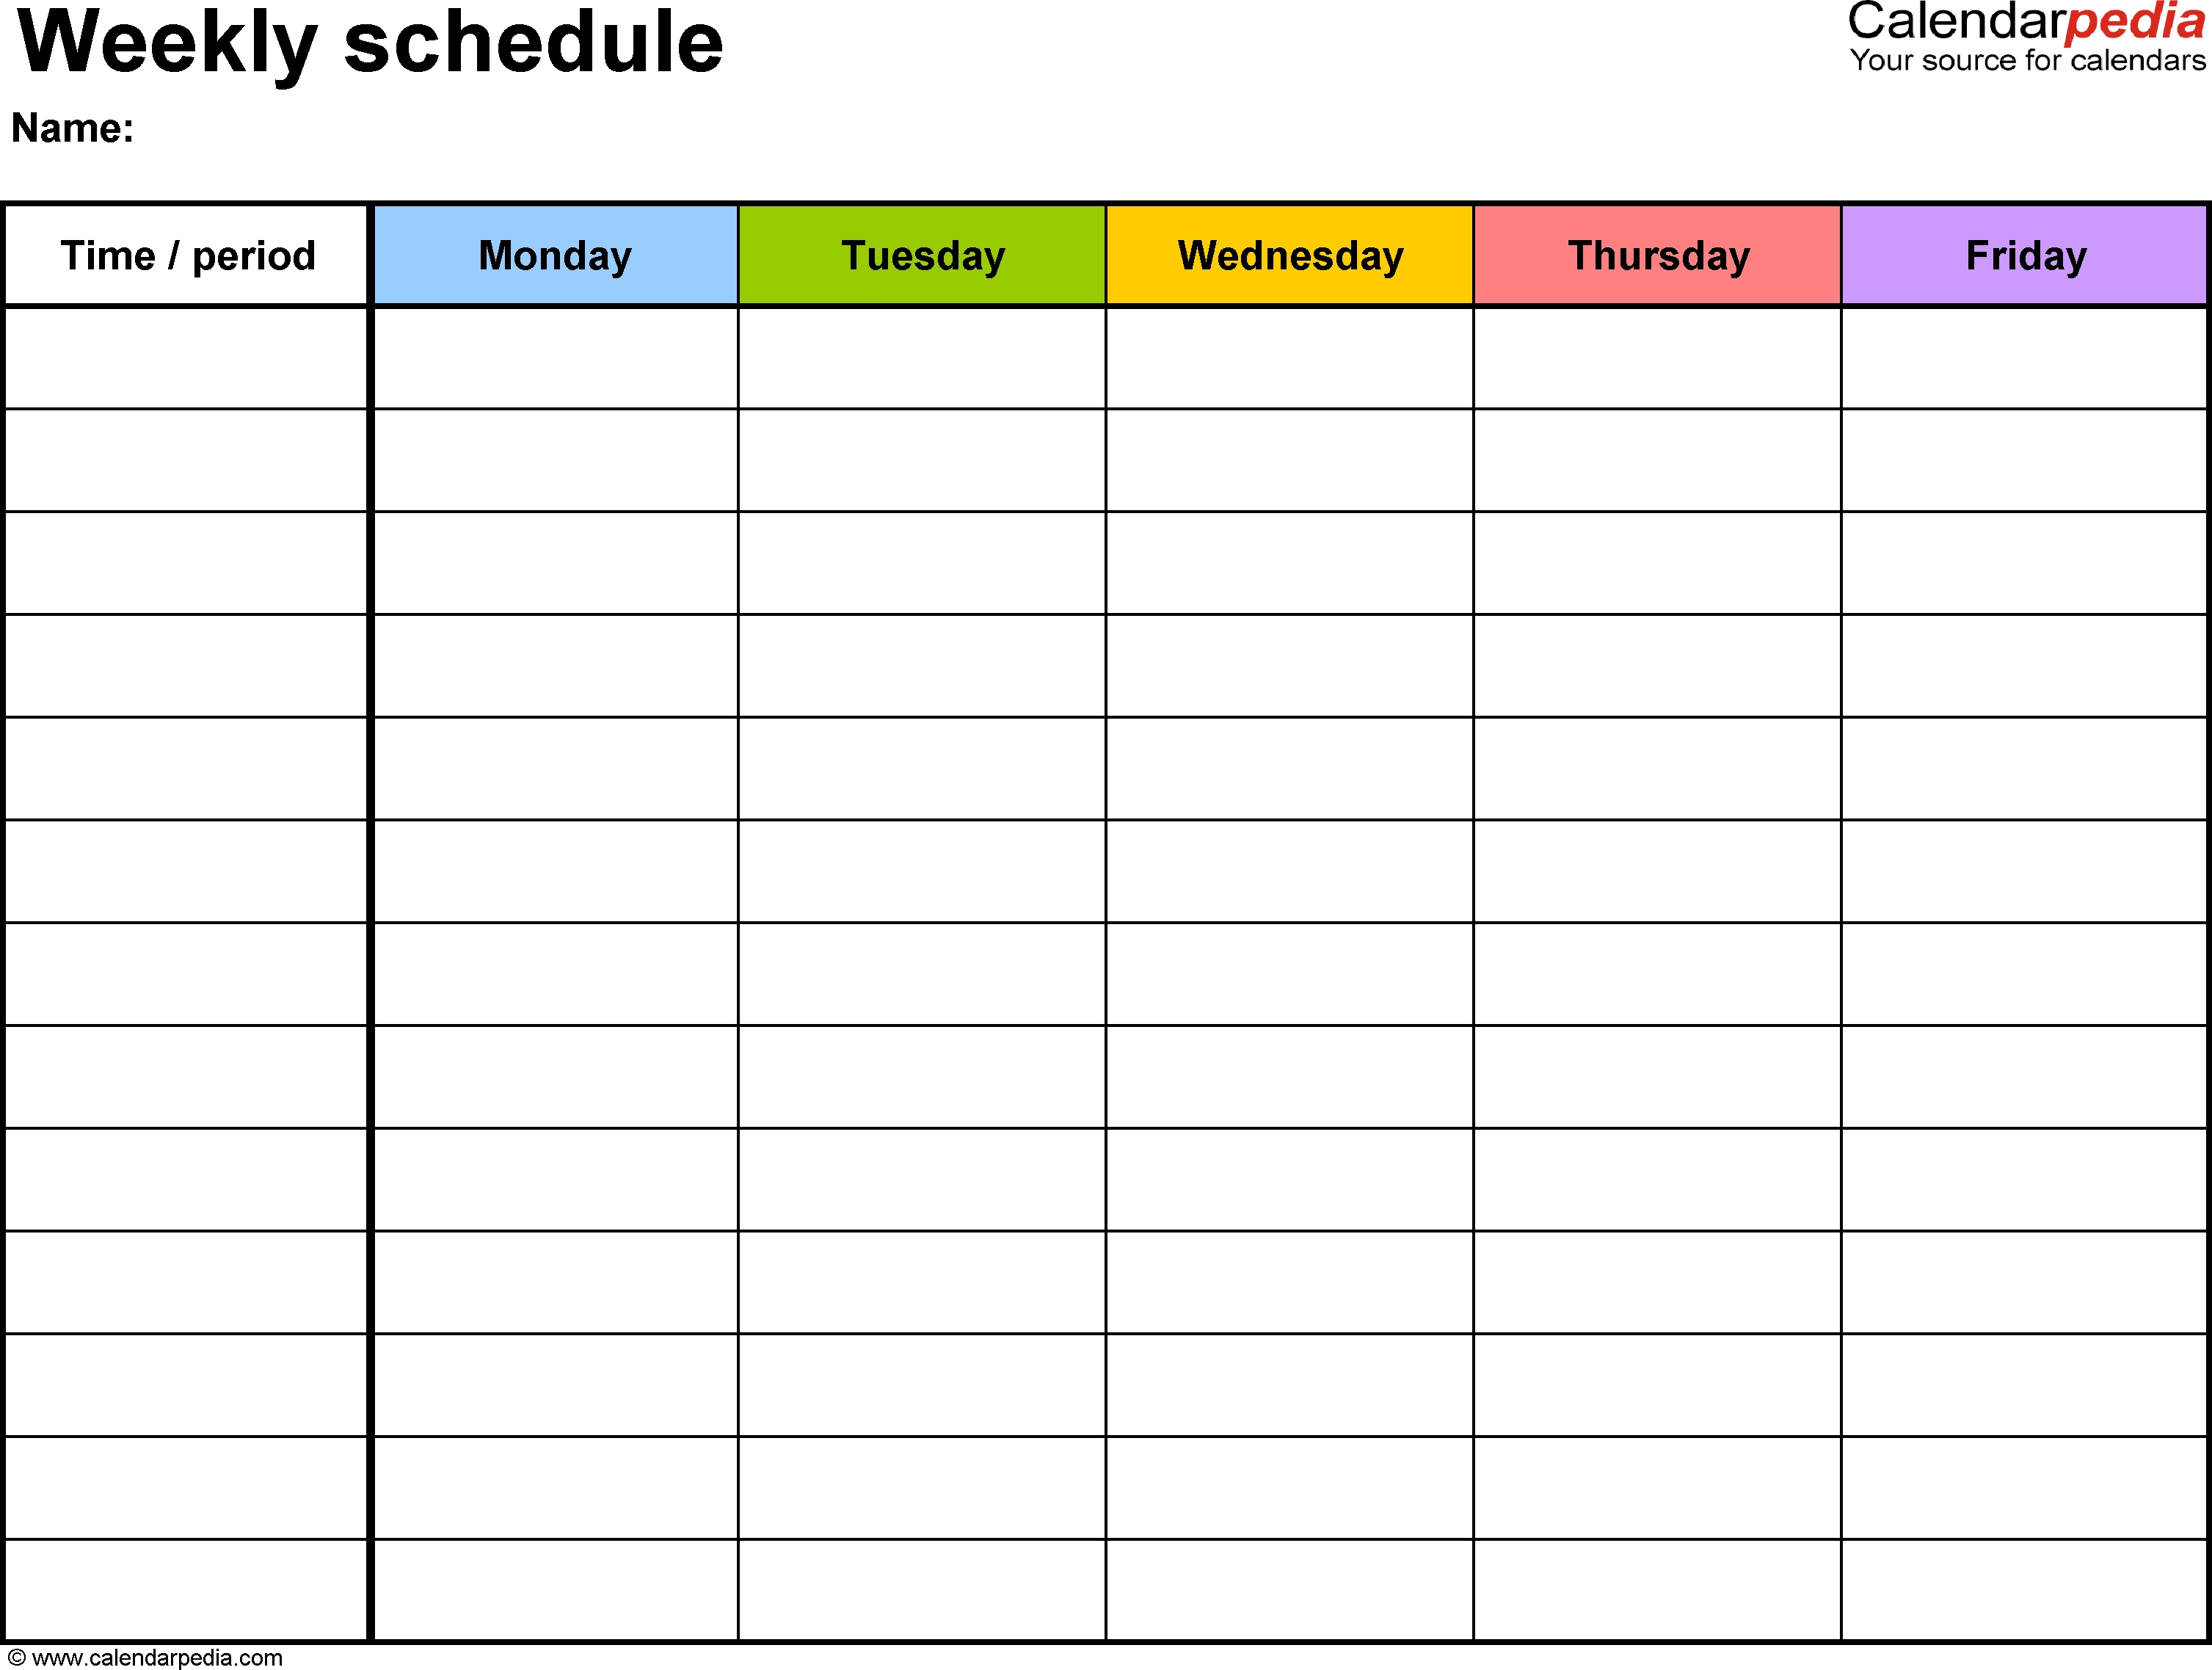 Weekly Schedule Template For Word Version 1: Landscape, 1 Blank Monday Through Friday Schedule Word